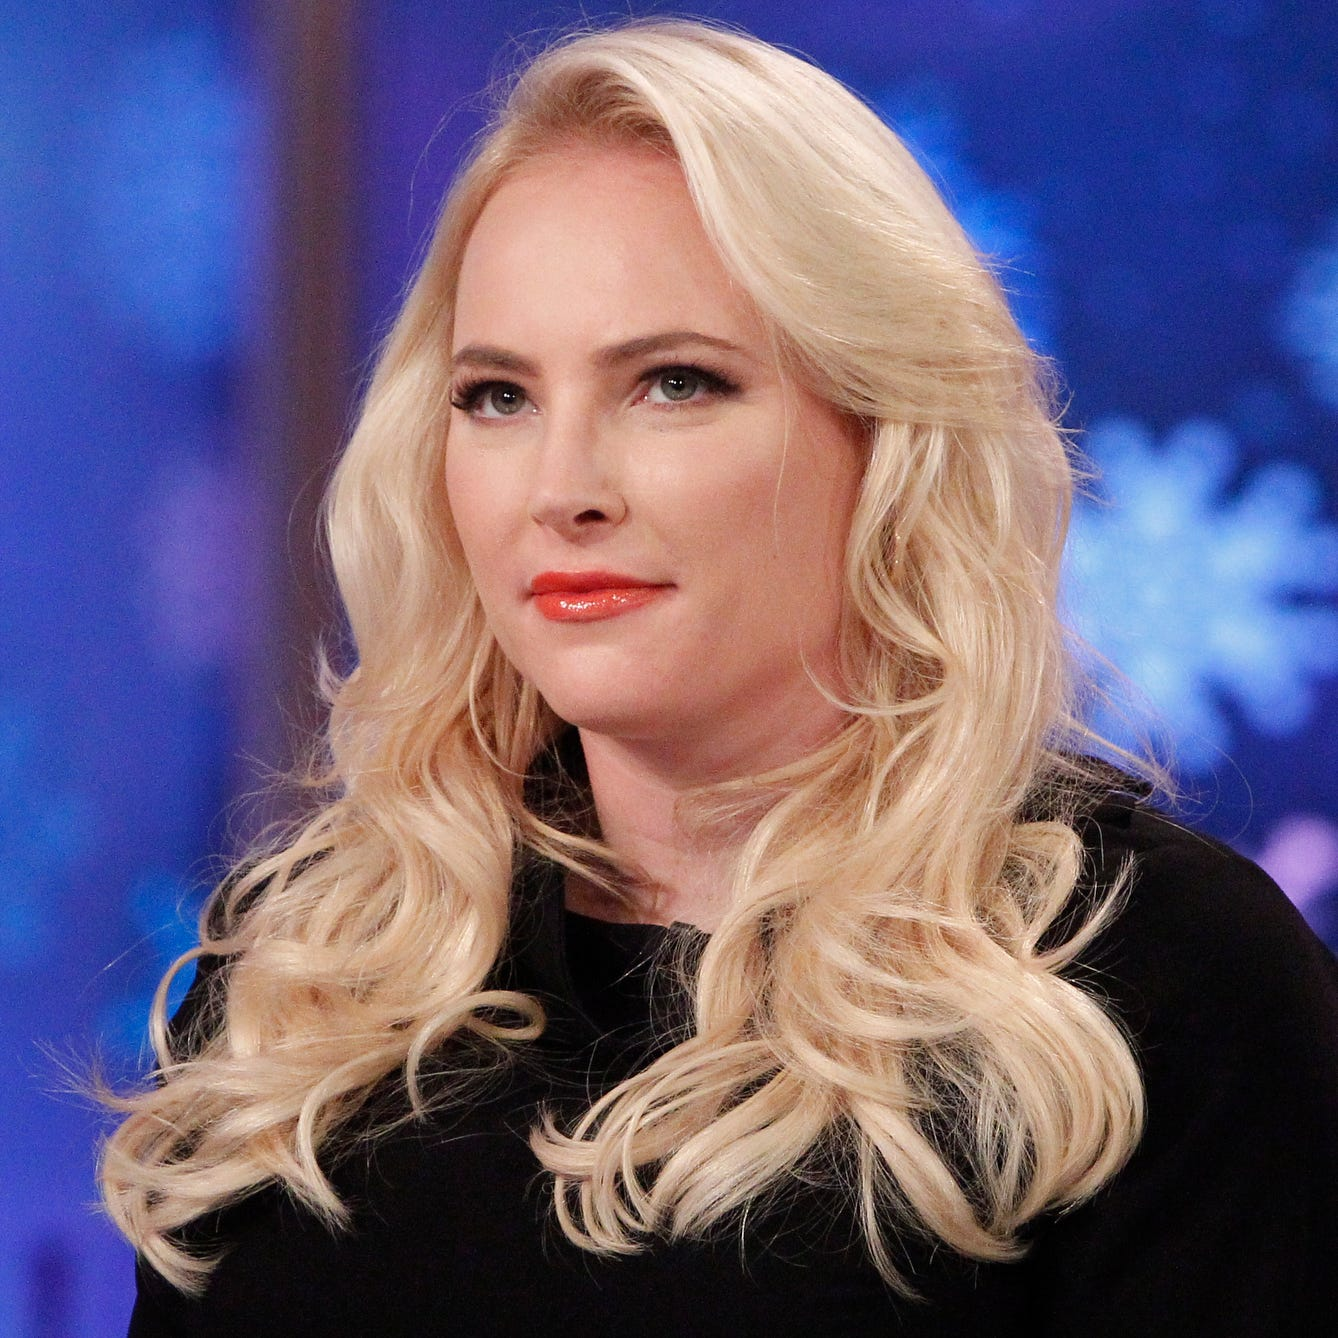 'You were at my wedding, Denise' is Meghan McCain's 'gift' to the Internet